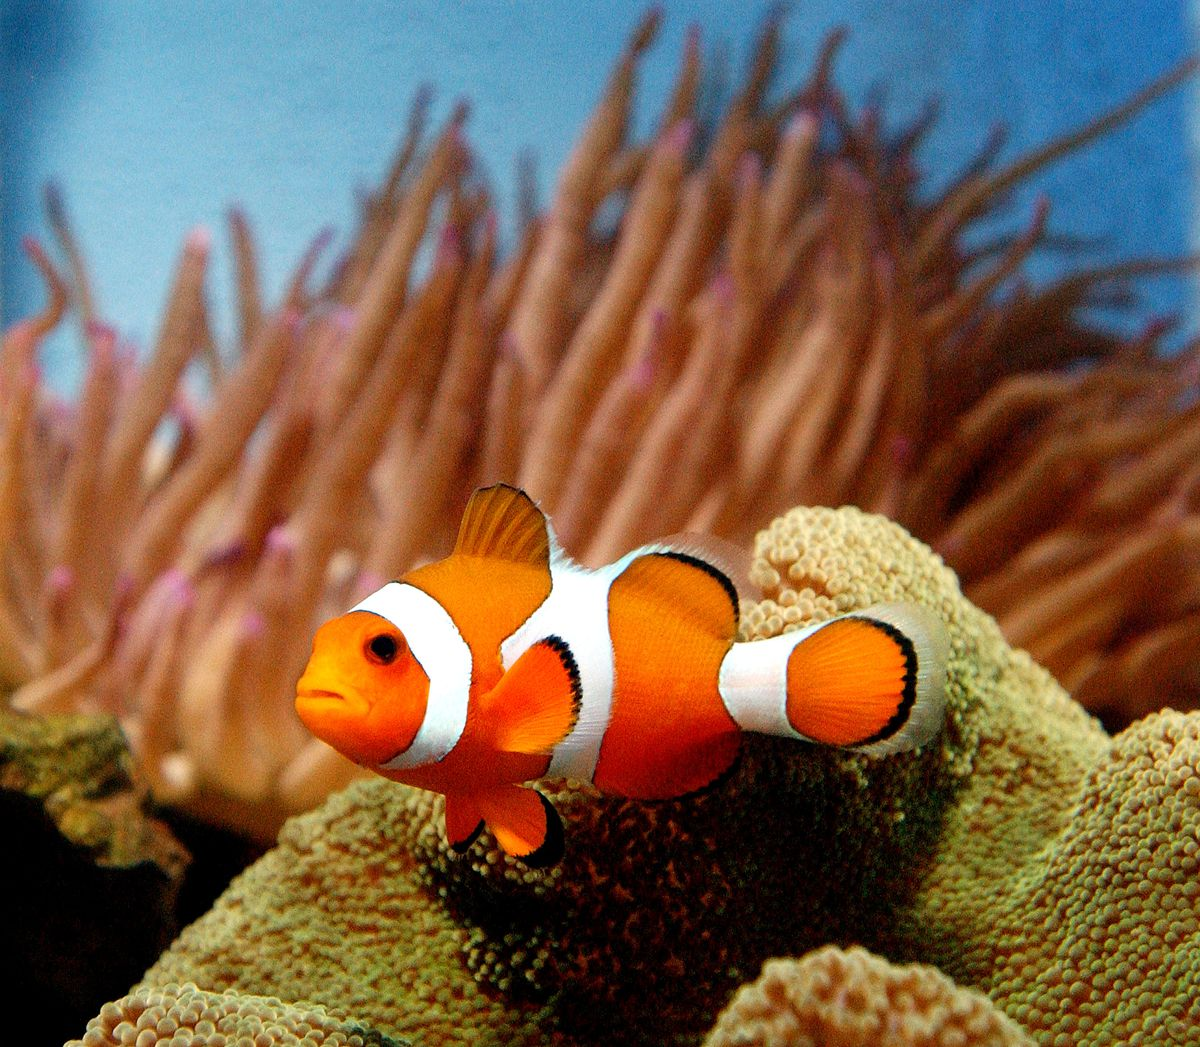 Finding Nemo Movie Causes Surge In Sales Of Clownfish